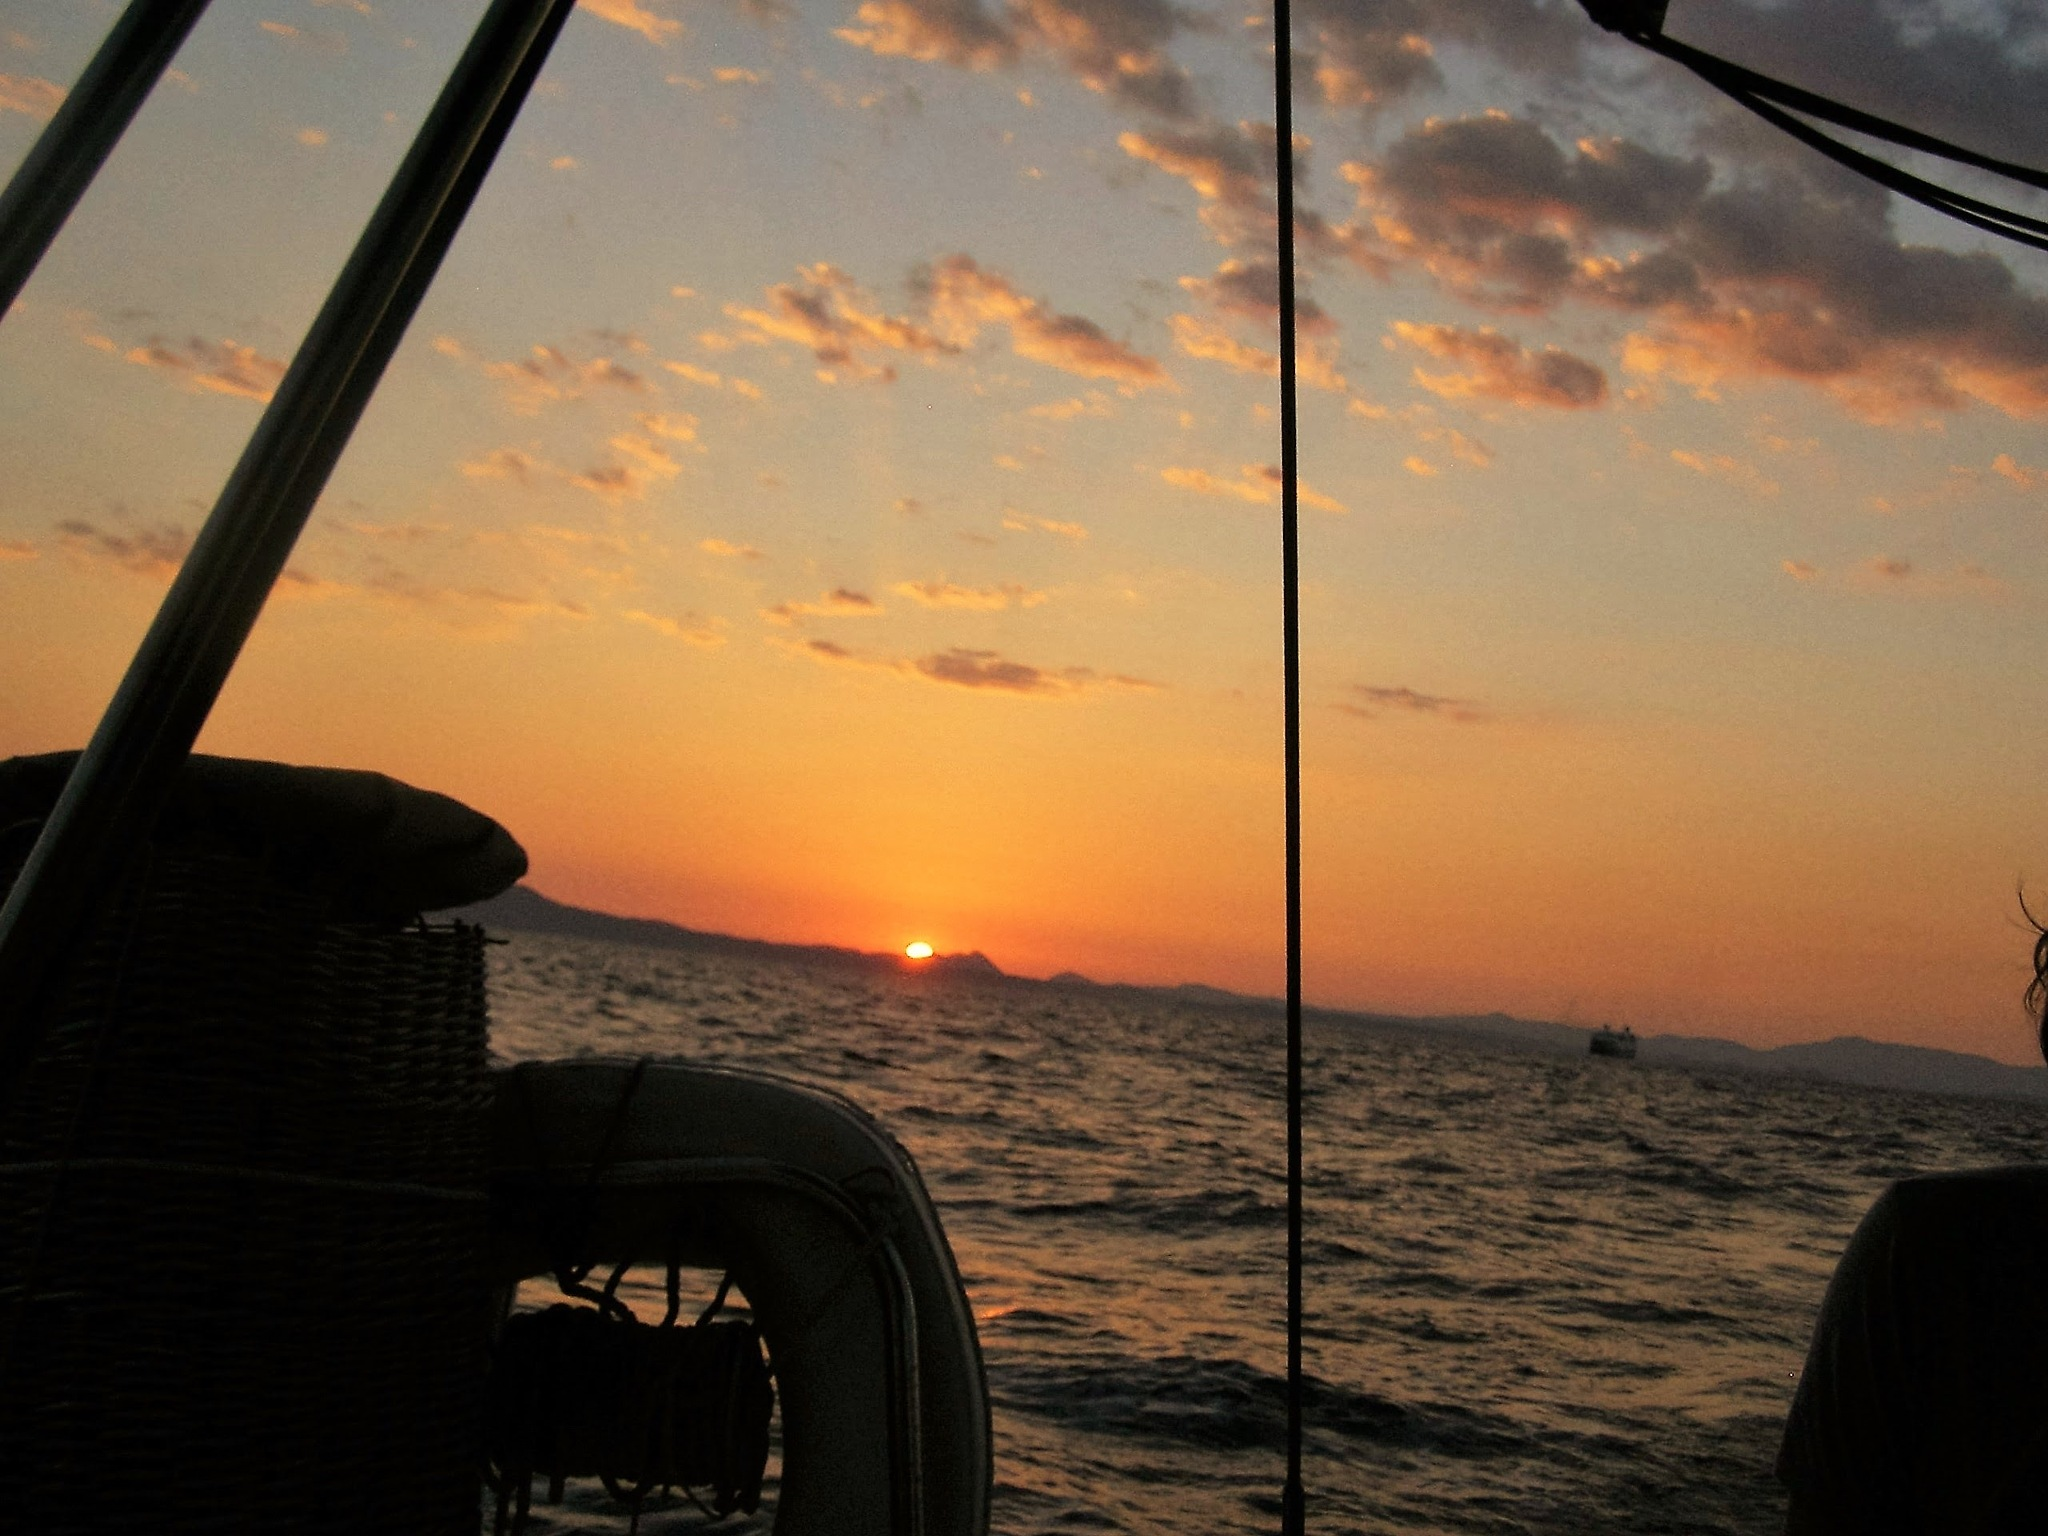 Summer Sunset while sailing the Ionian Sea by Dan Gts